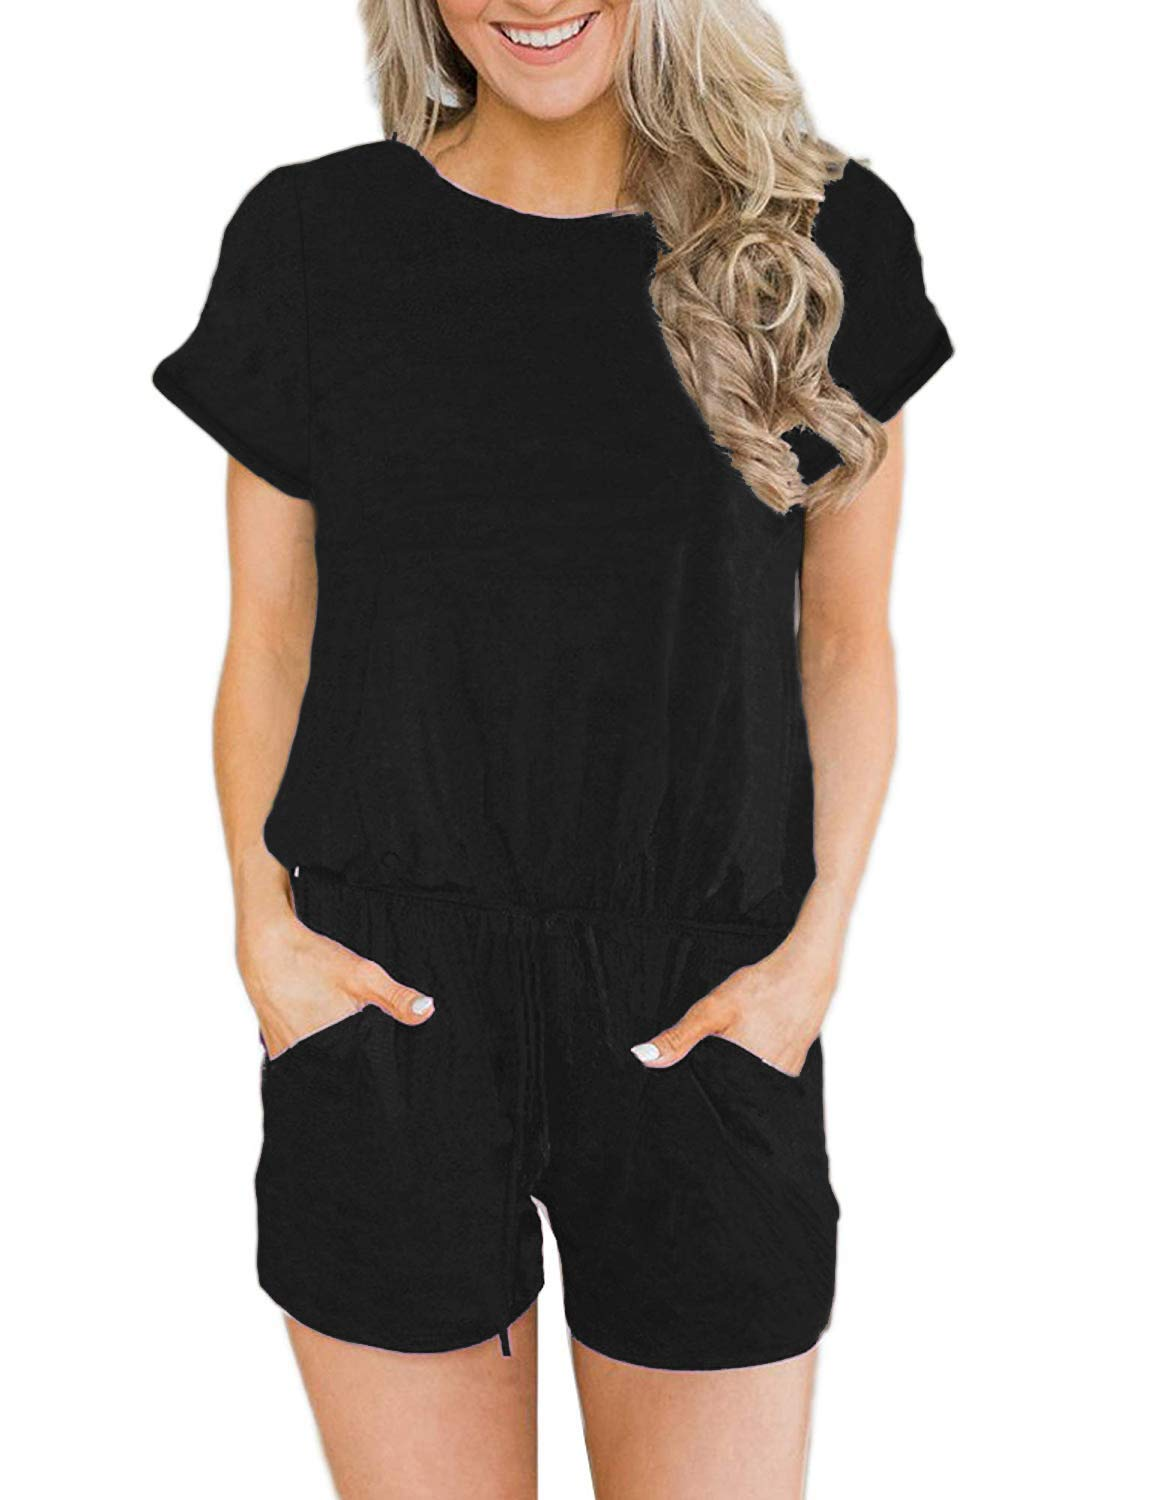 Angerella Women's Summer Short Sleeve Casual Rompers with Pockets Loose Fit